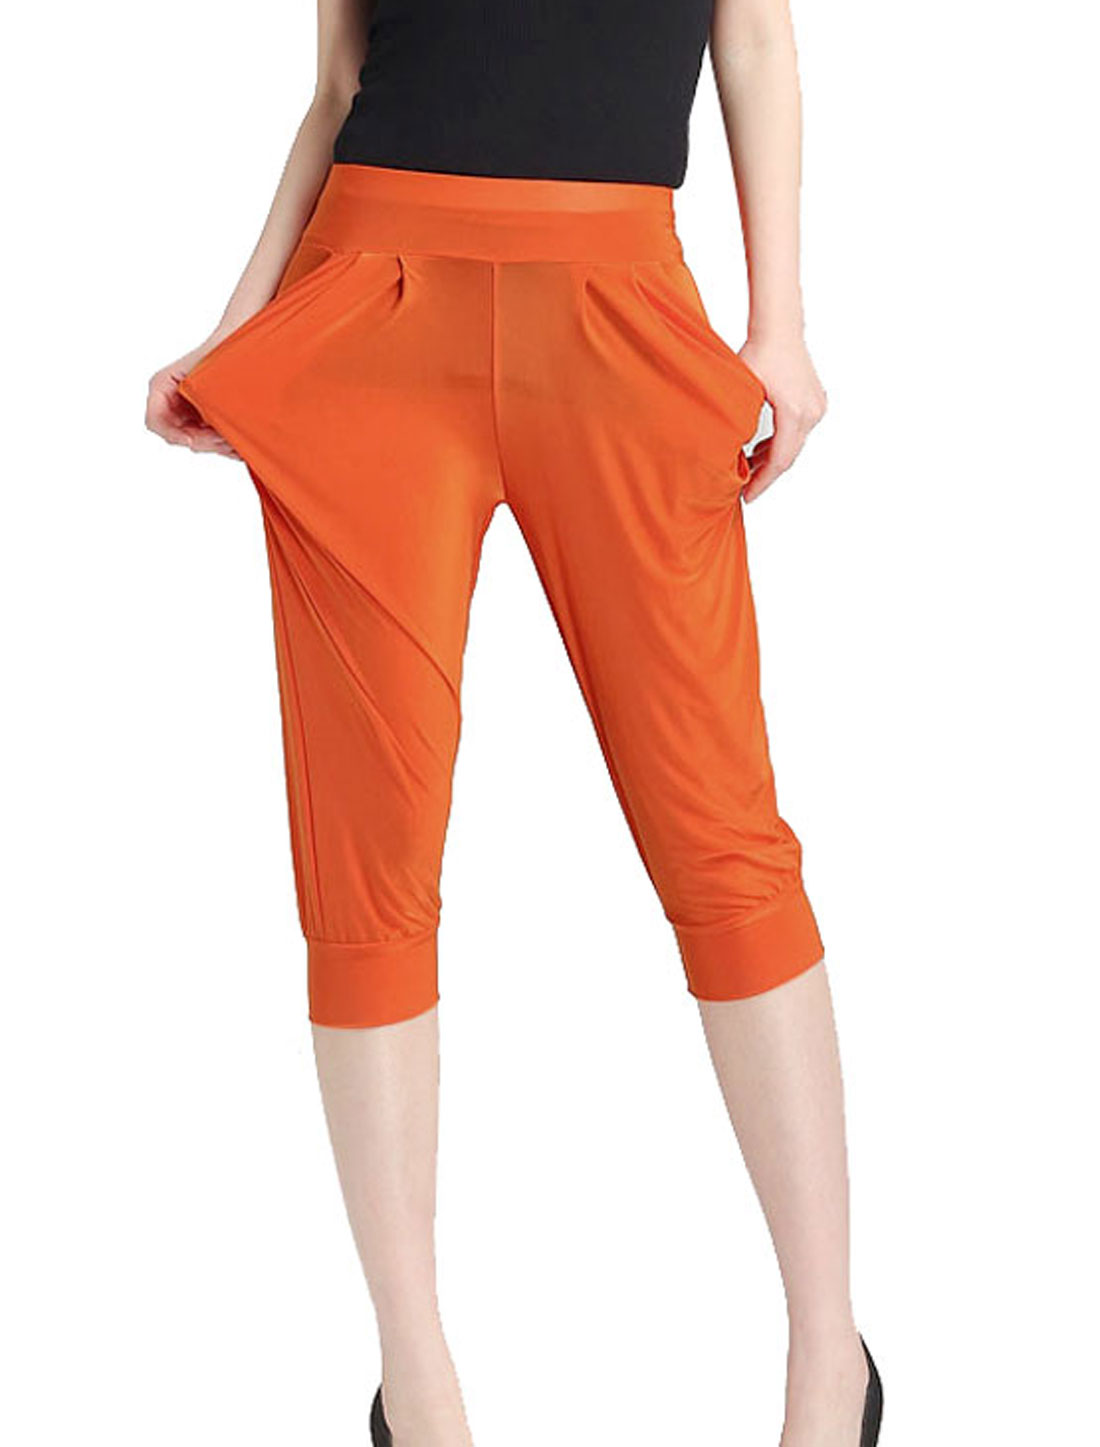 Stretchy Waist Slant Pockets Front Harem Pants Orange XS for Ladies